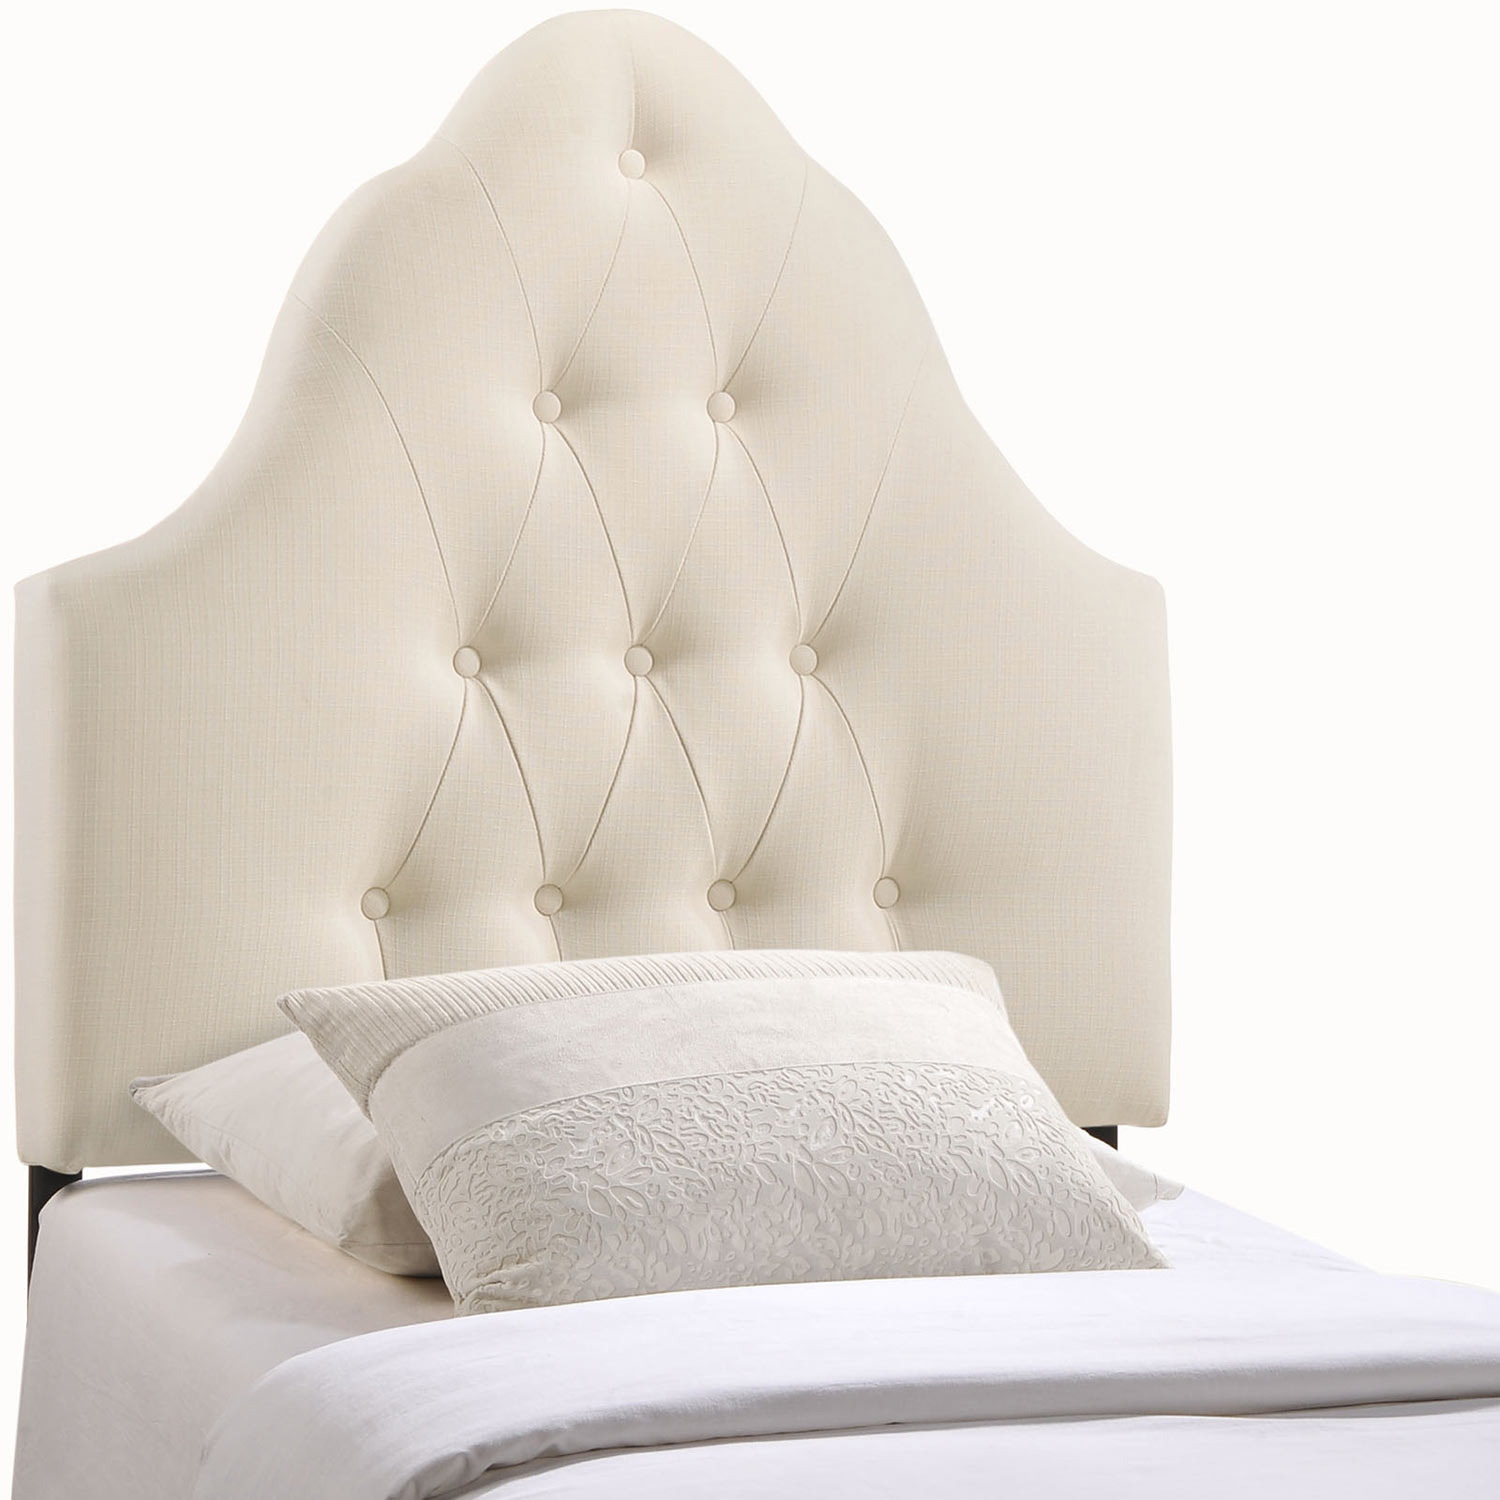 Modway Sovereign Fabric Headboard - Ivory